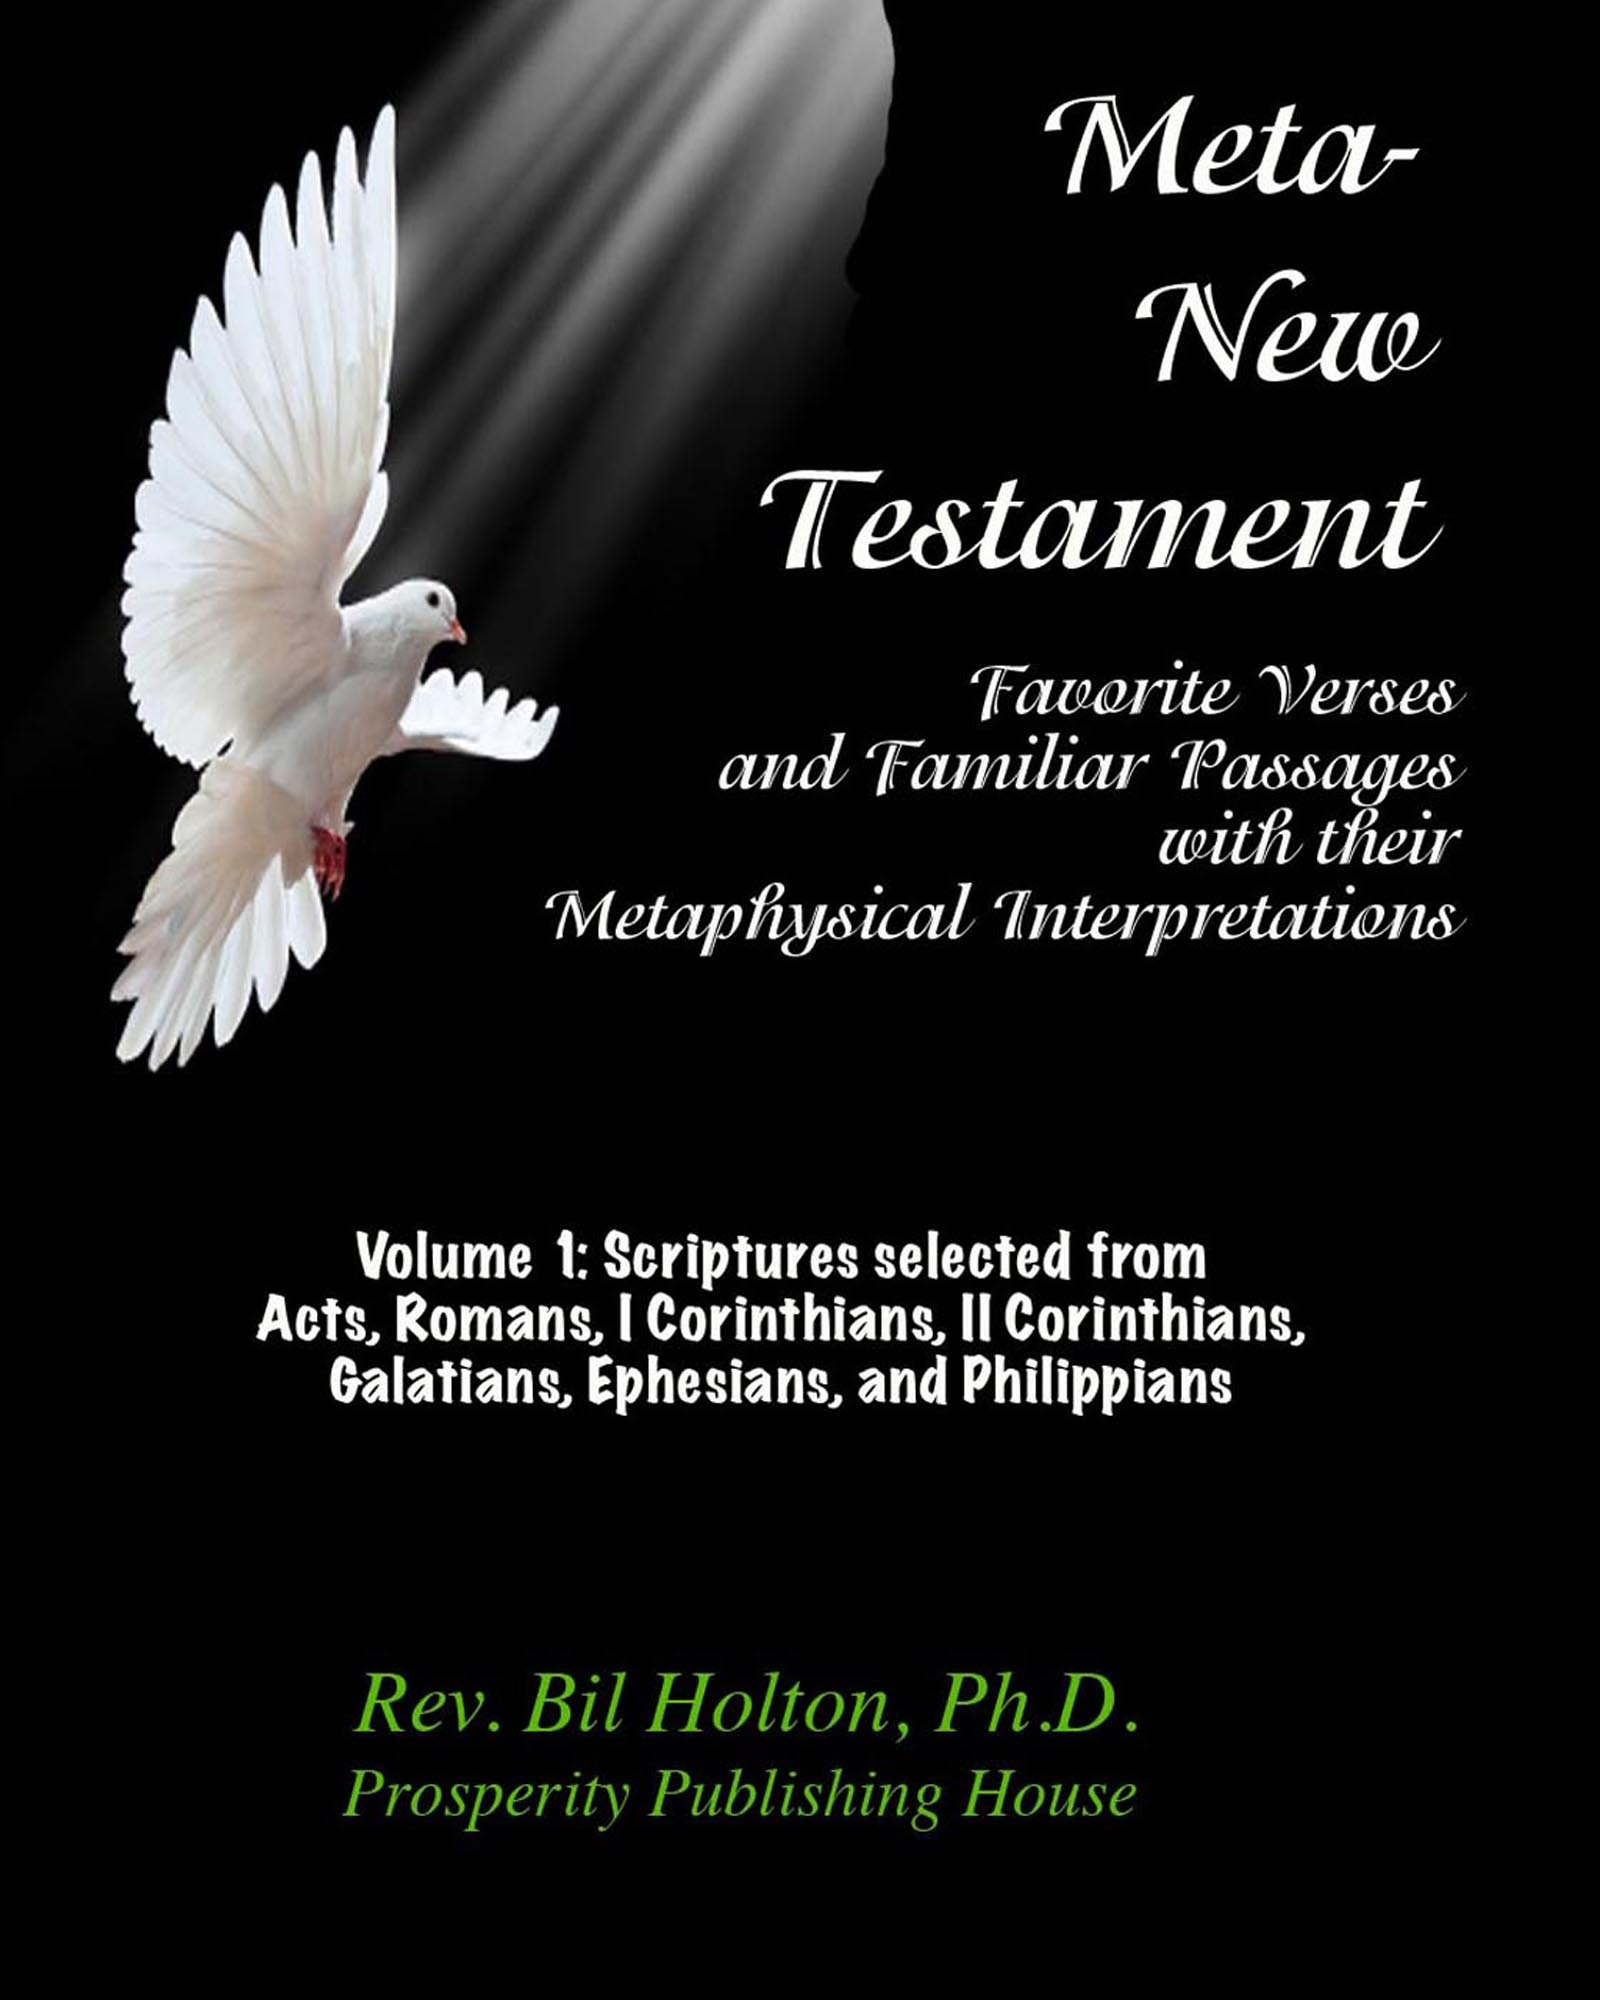 Meta-New Testament: Favorite Verses & Familiar Passages with their Metaphysical Interpretations – Volume 1